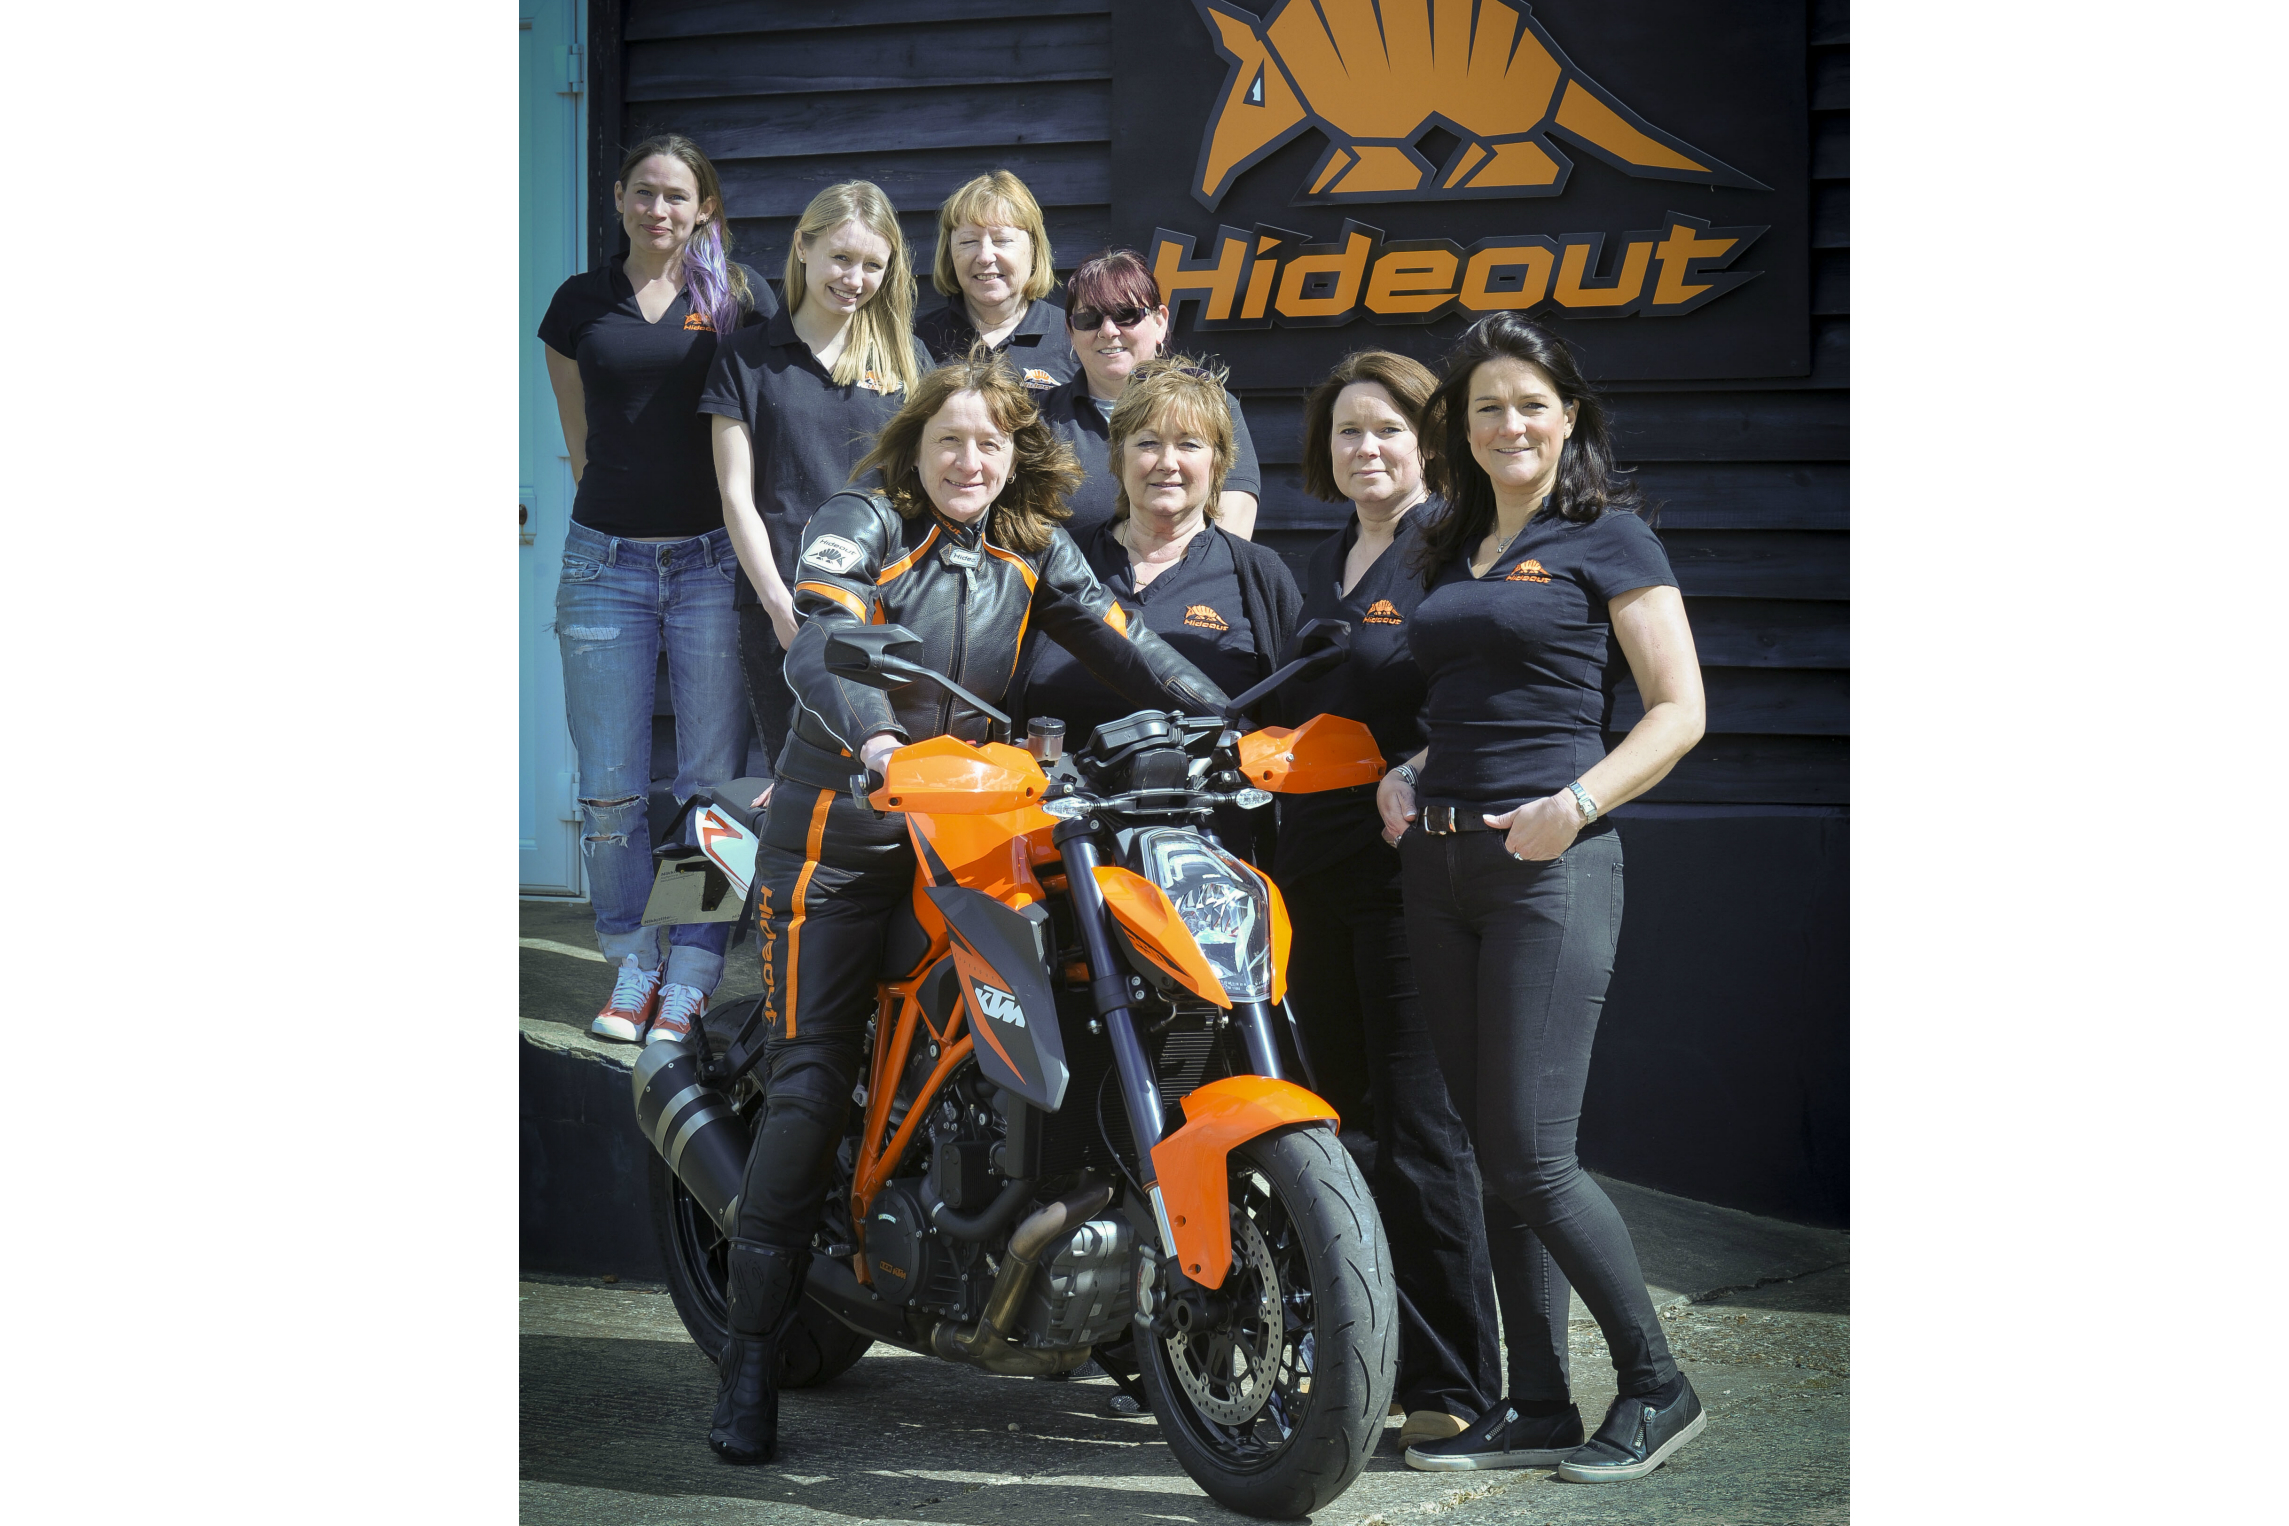 Hideout leather girls in Mission Impossible